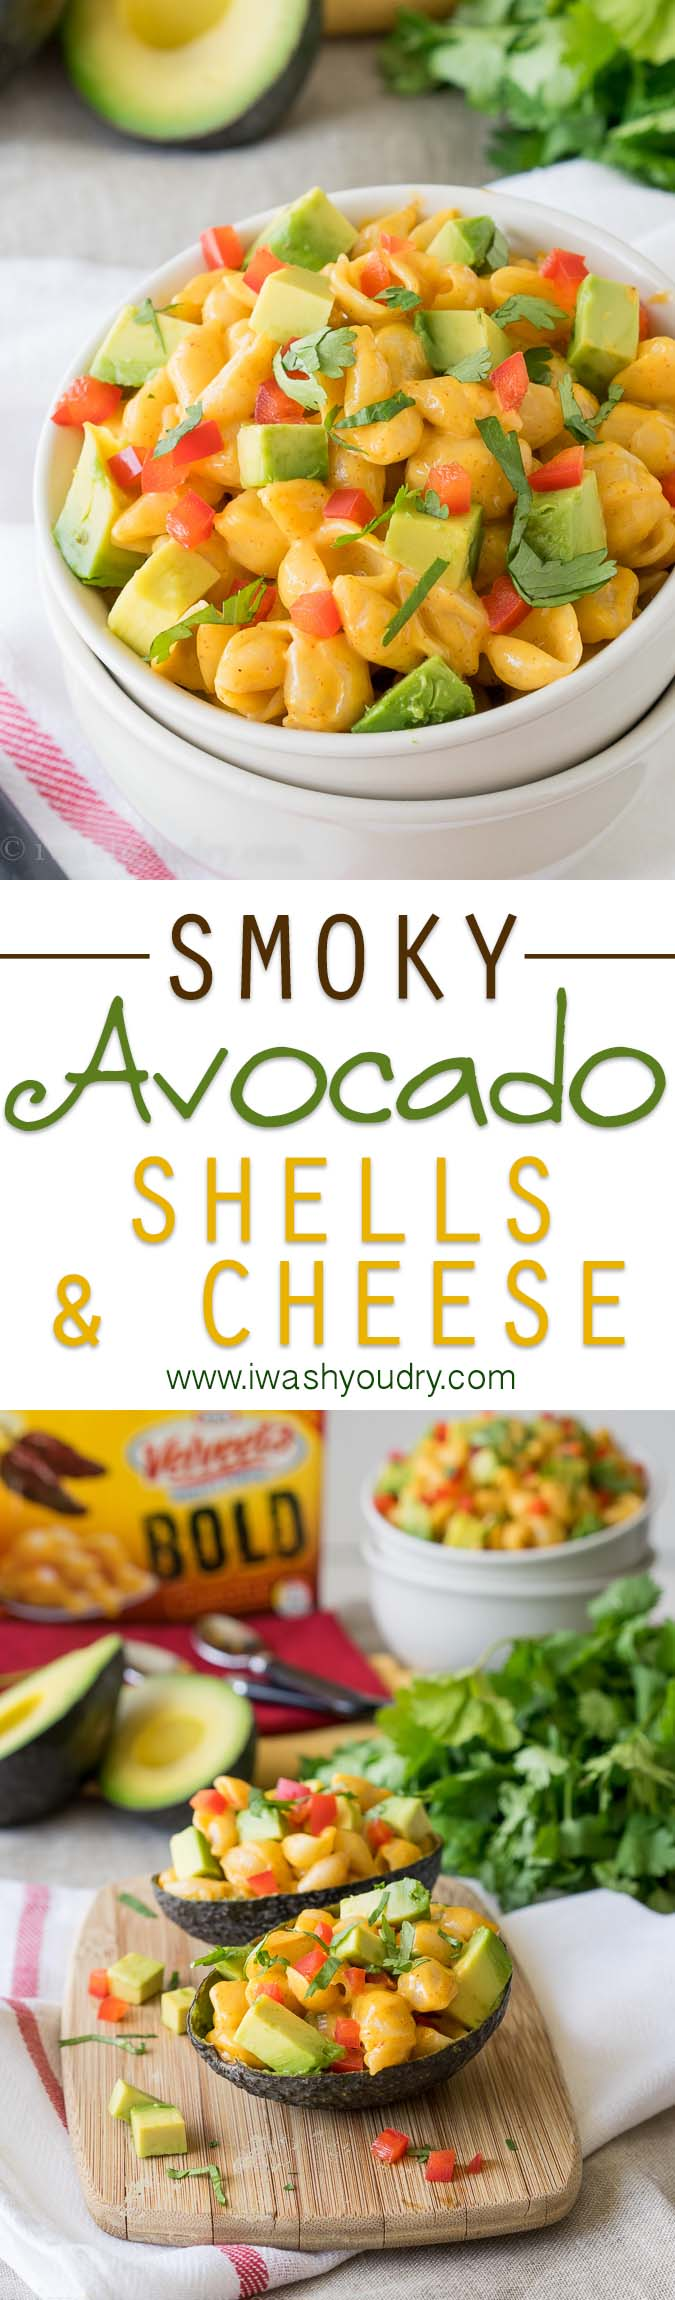 Smoky Avocado Shells and Cheese! Love the spice and flavors of this super easy snack or dinner recipe!